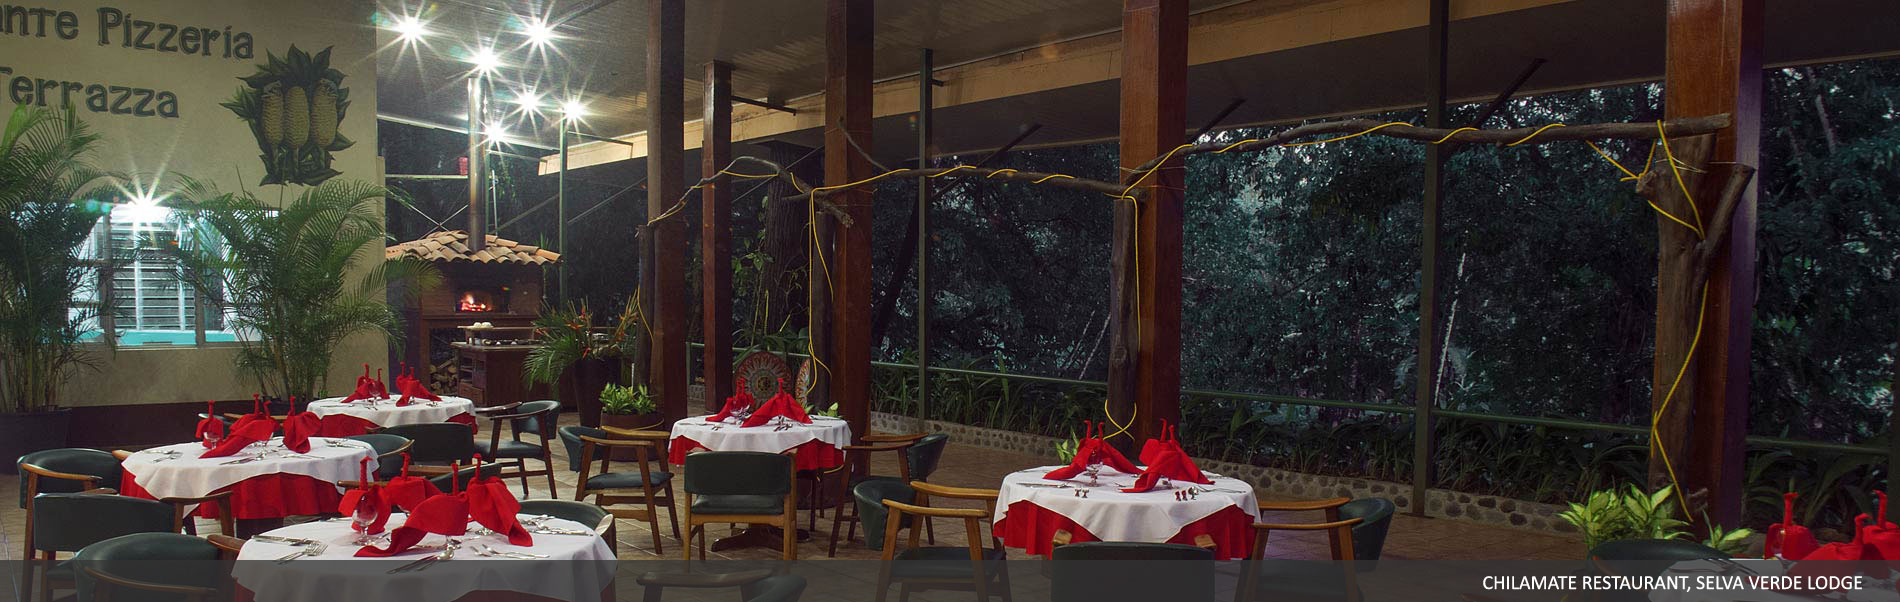 restaurante-chilamate.jpg